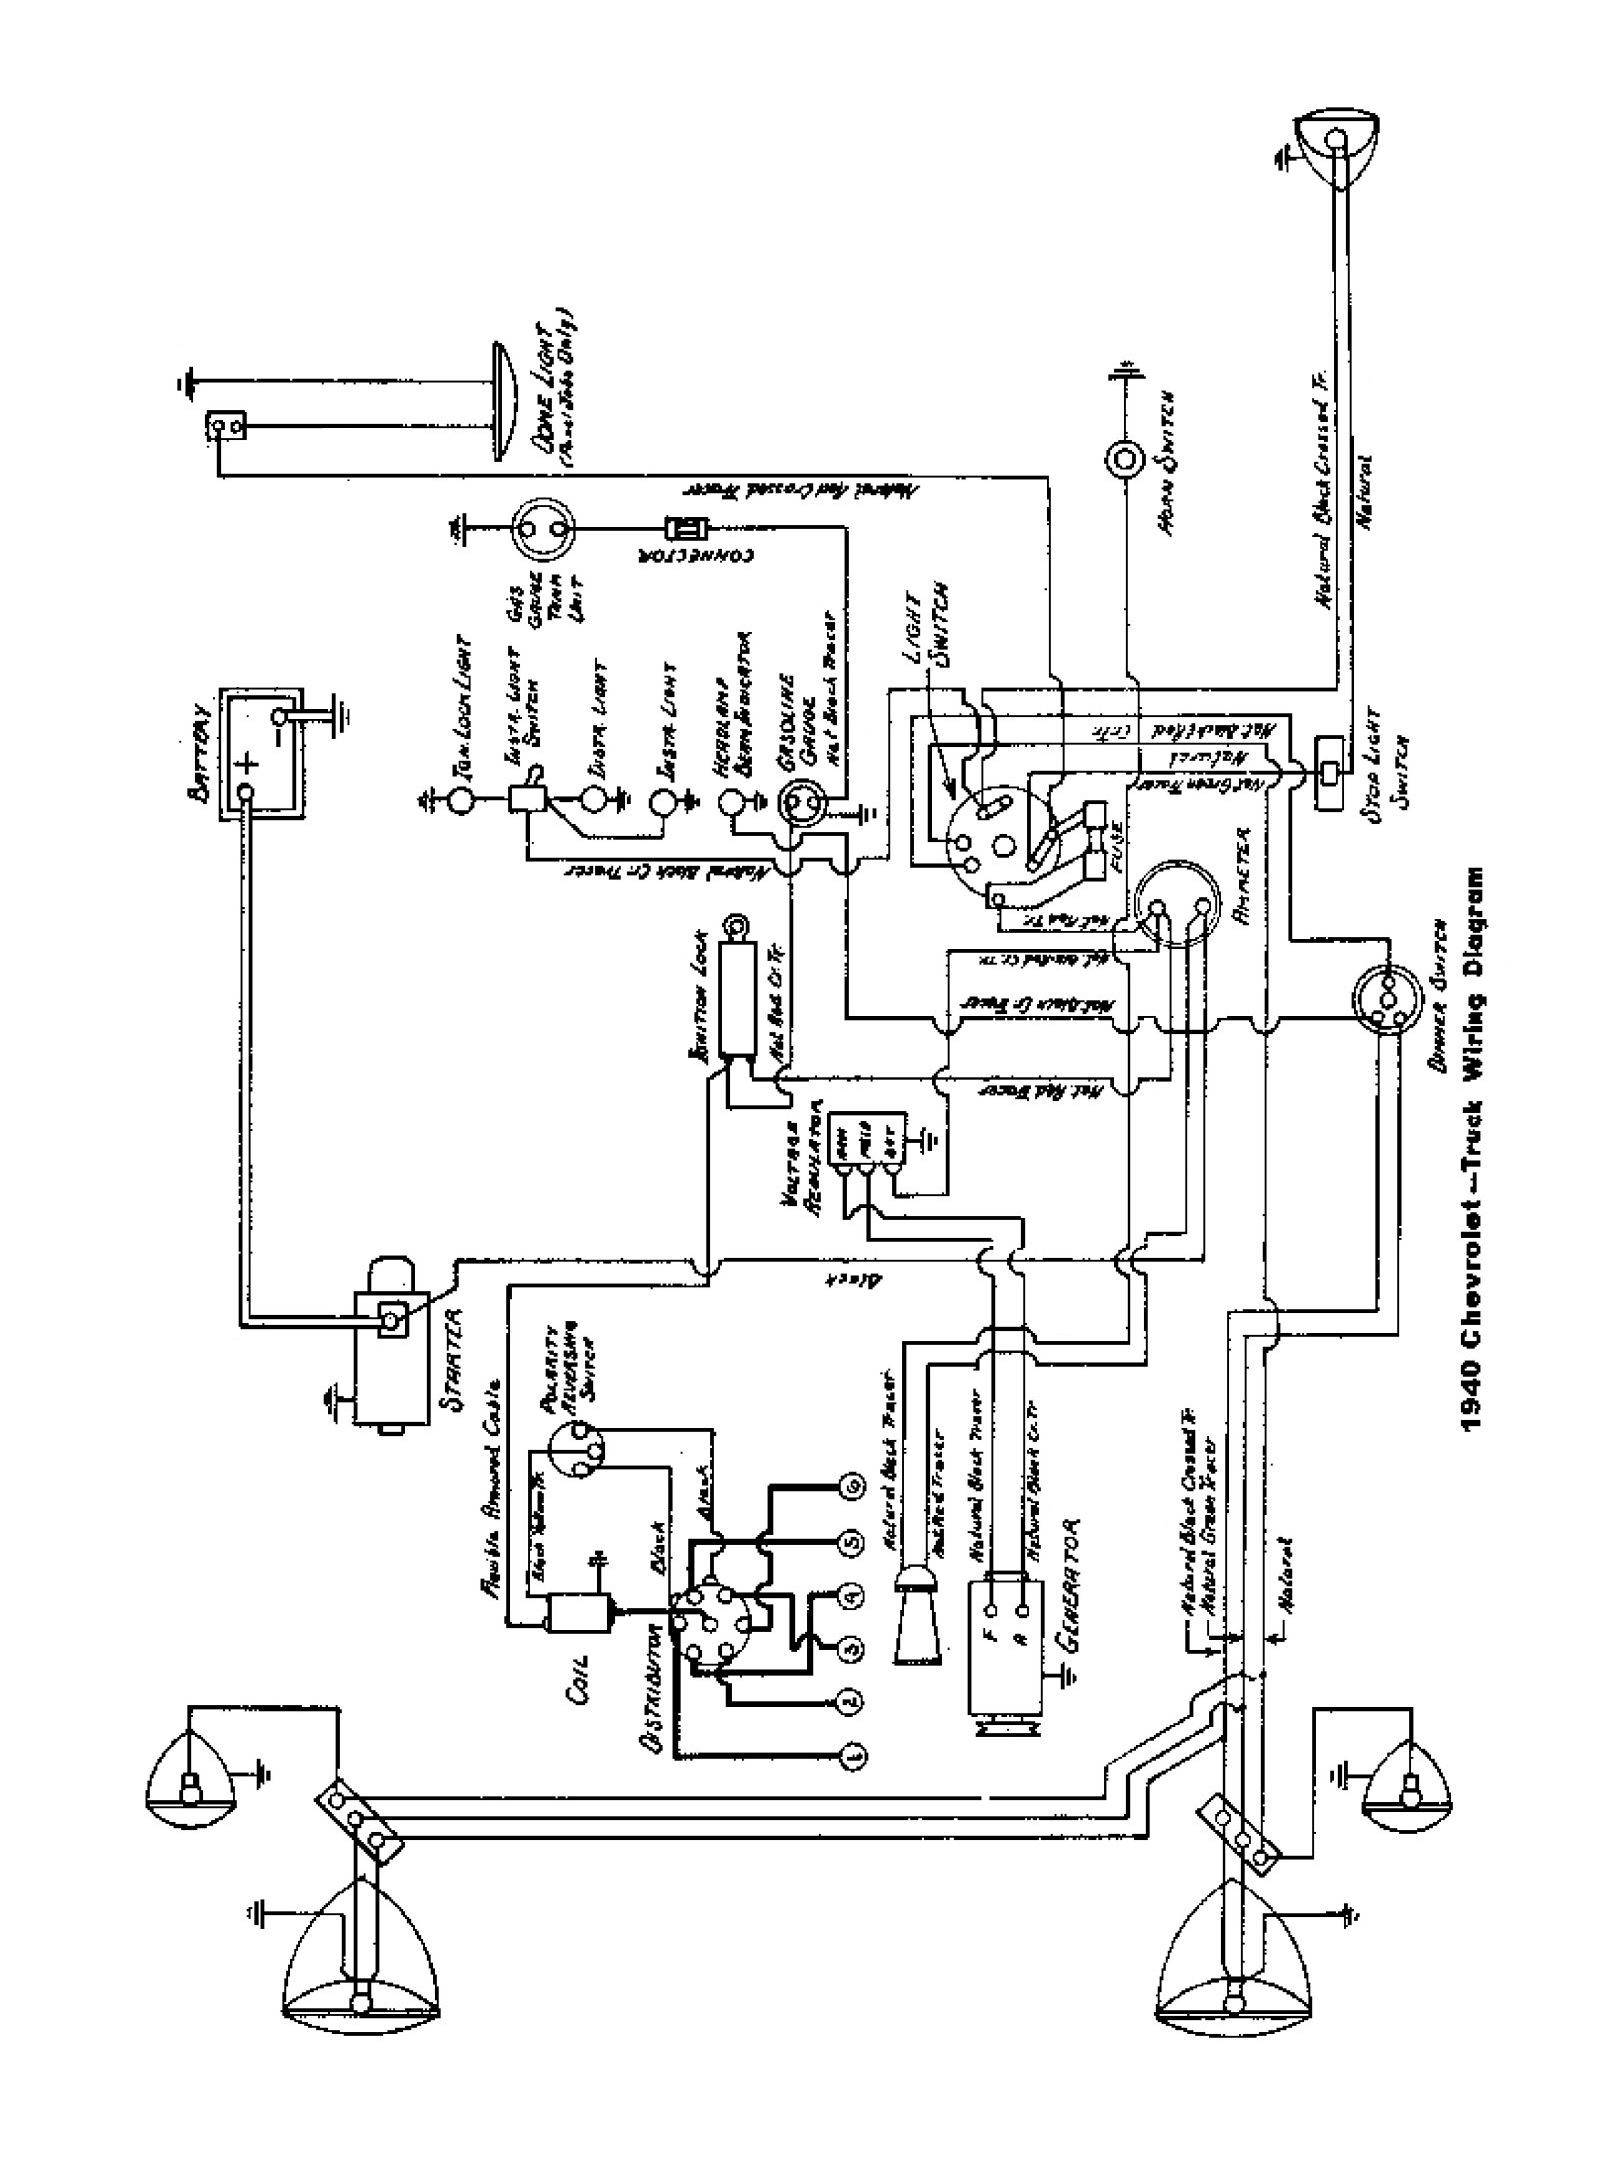 88 Chevy Wiring Diagram Truck Electrical Orion Erp Manual